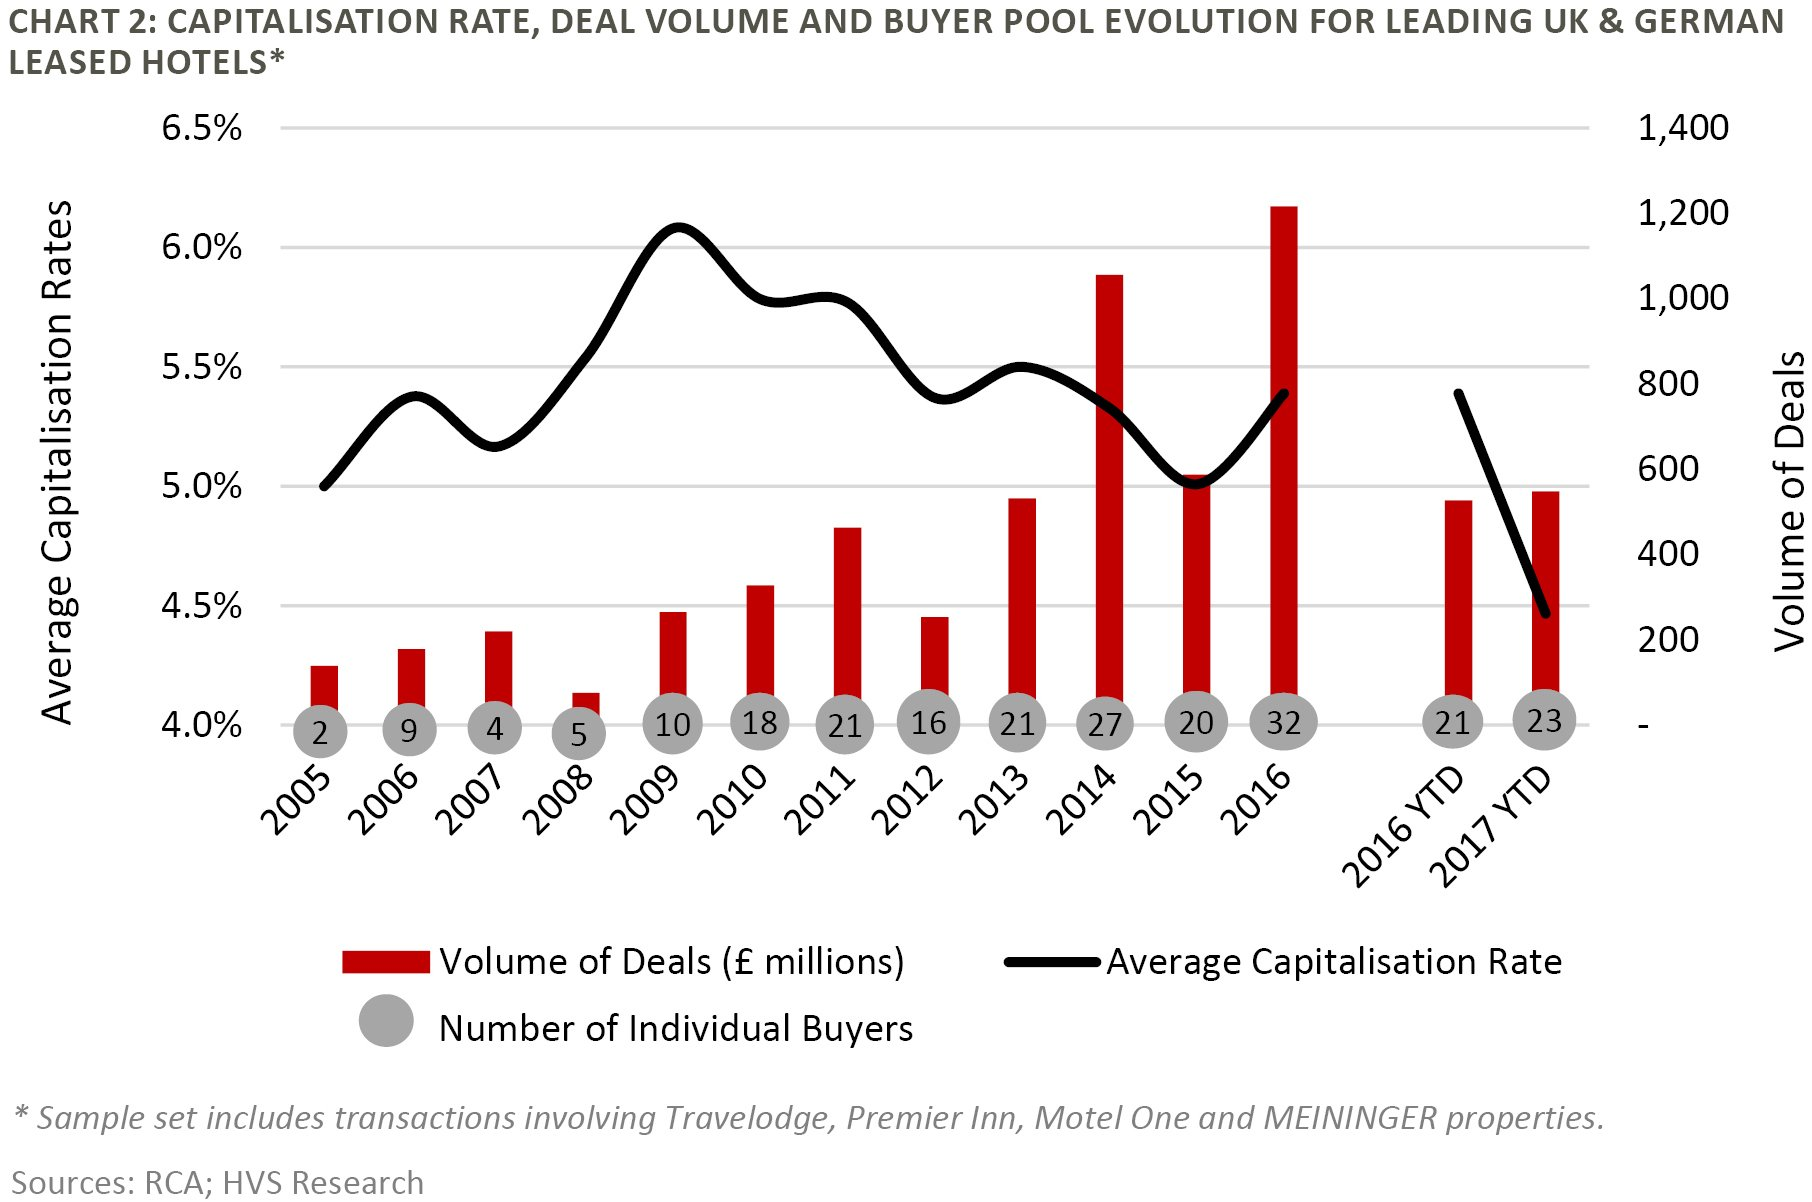 Capitalisation Rate, Deal Volume and Buyer Pool